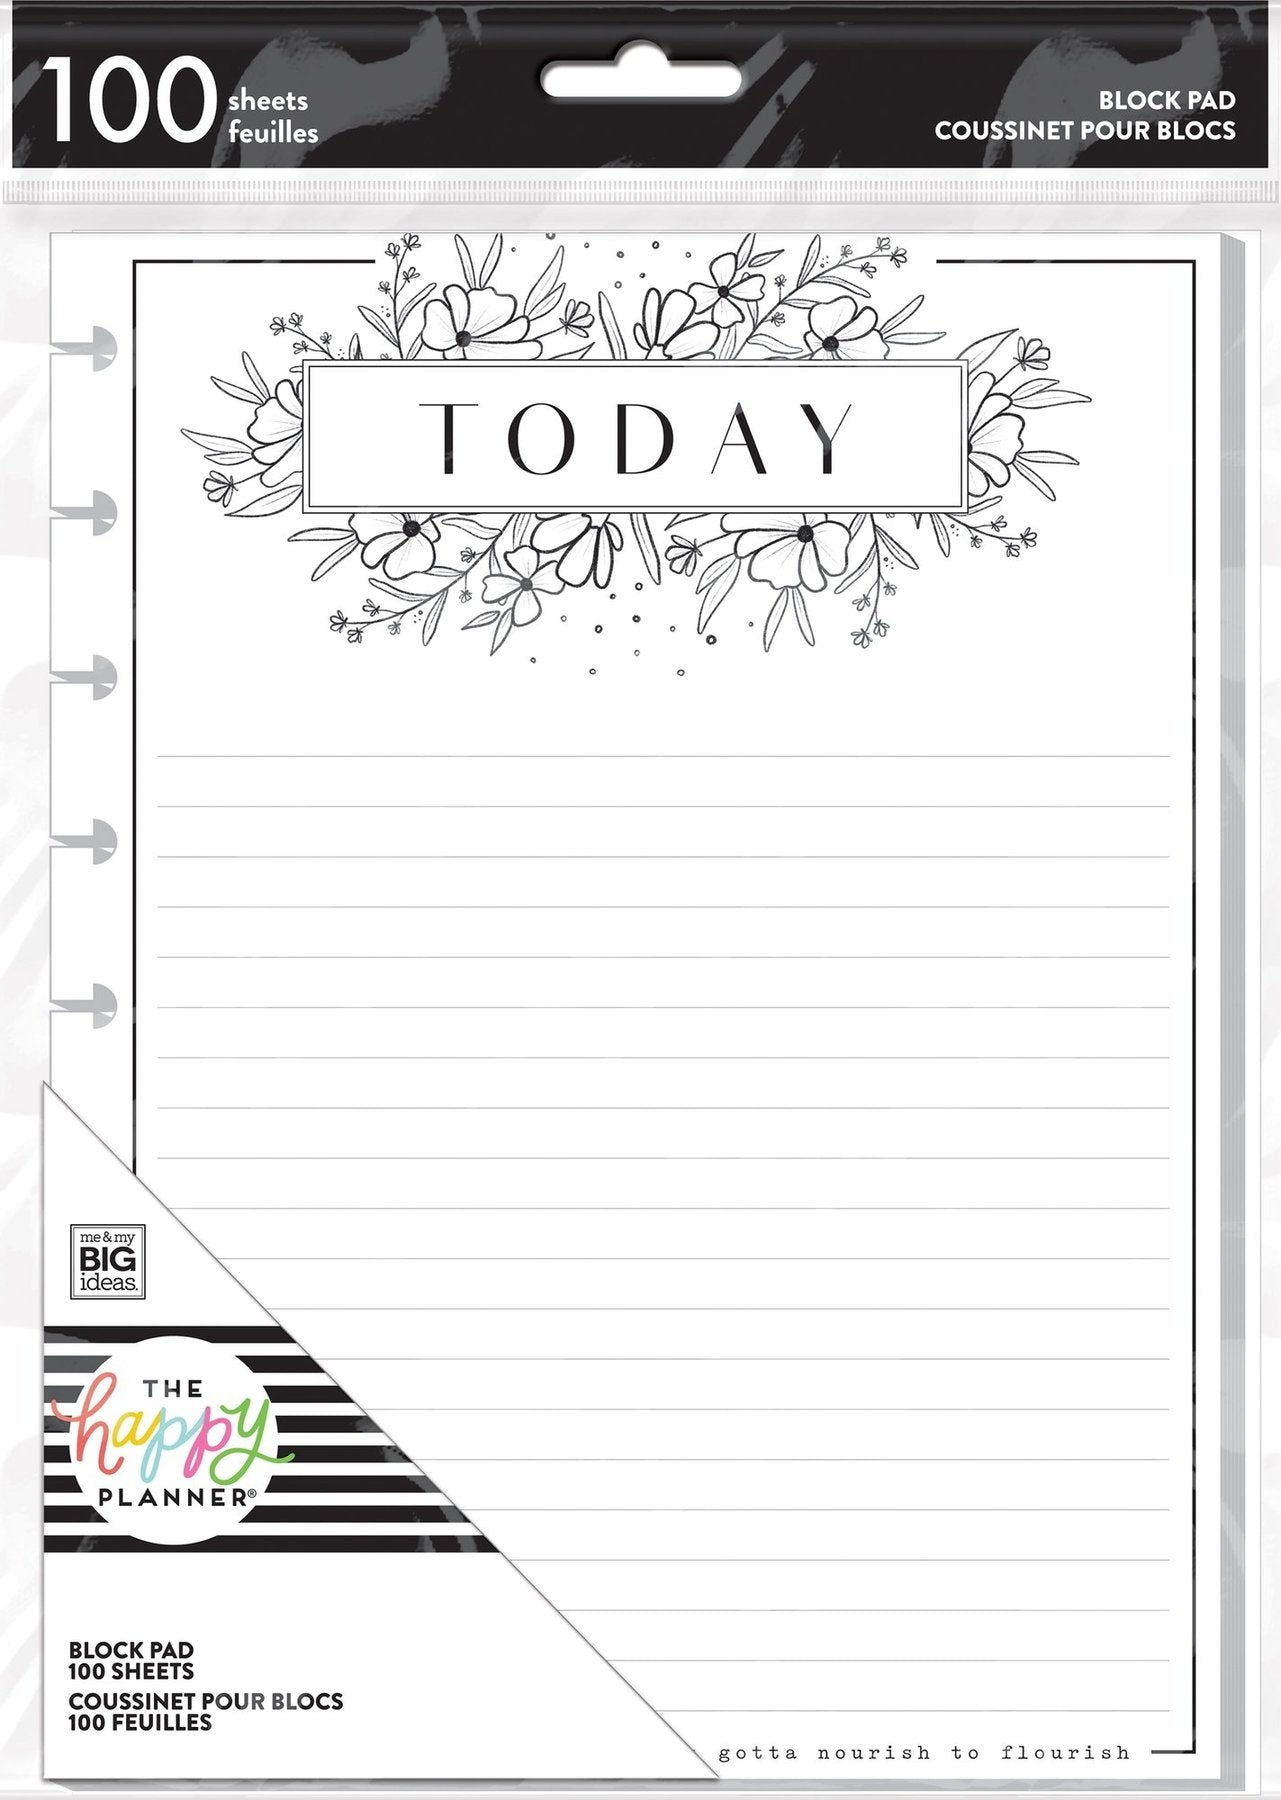 Classic Block Paper Pad - Black And White Floral